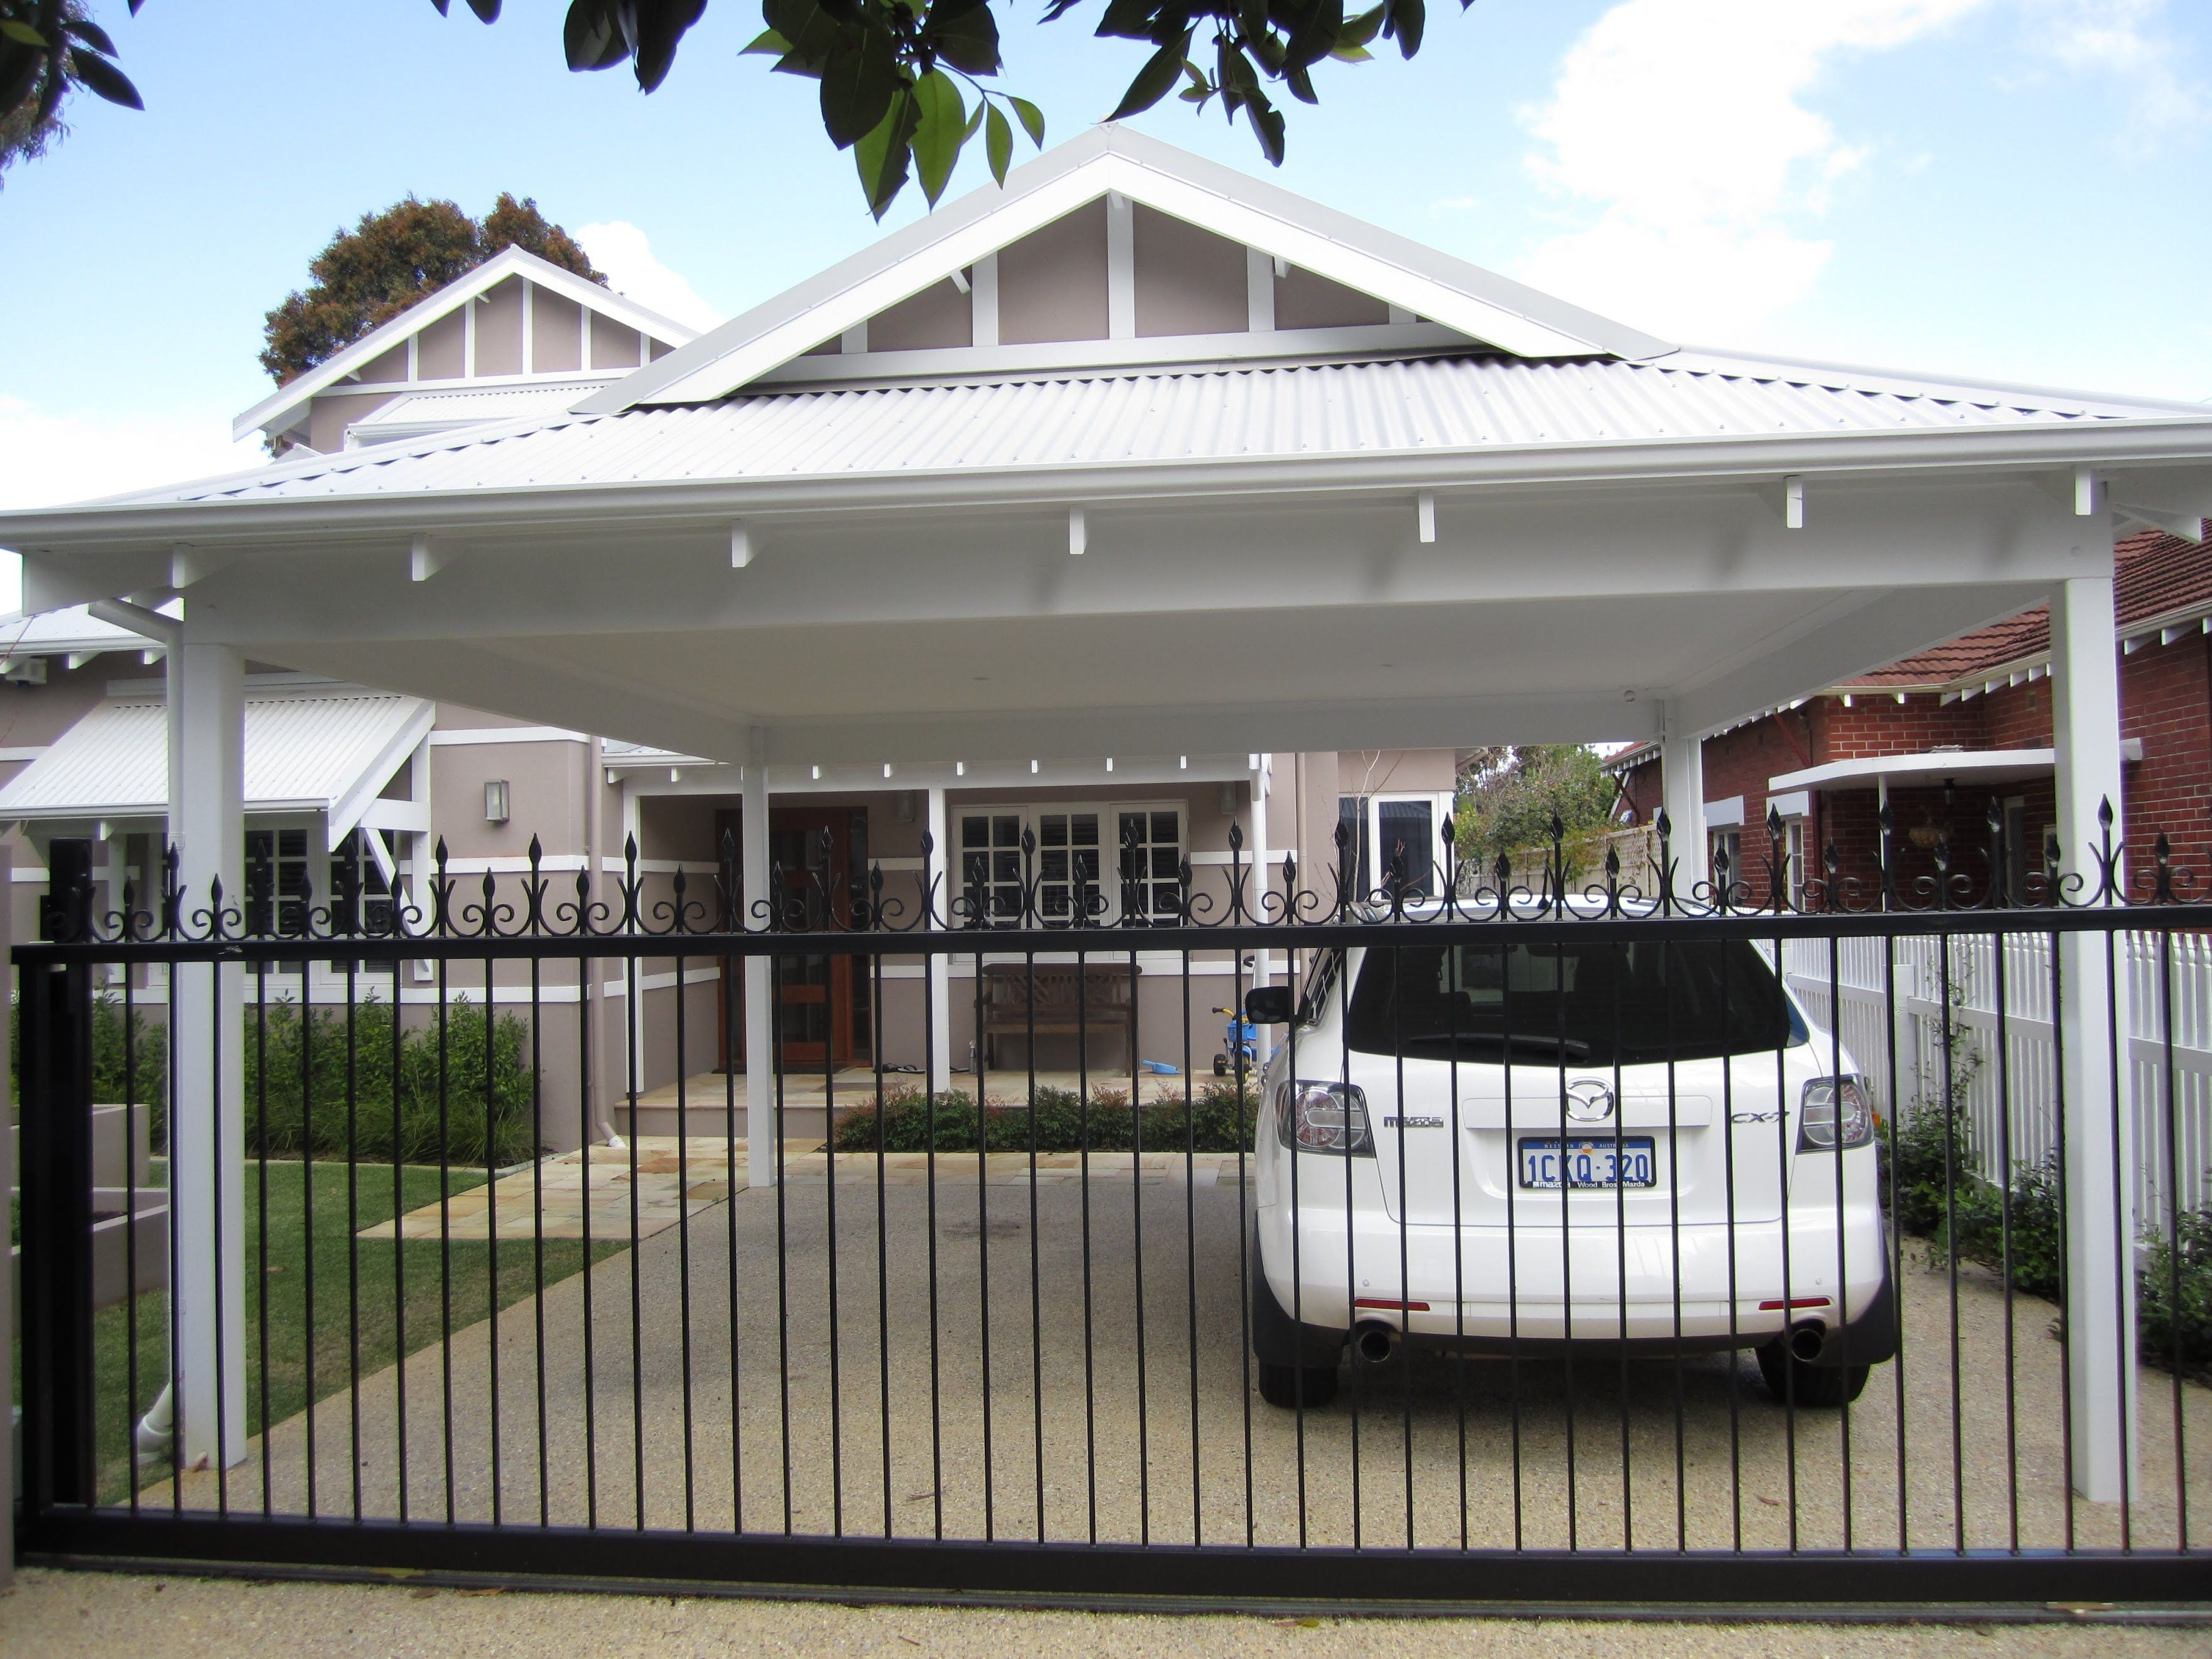 How To Build A Wooden Carport Off Your Existing Garage Carport Garage Garage Pergola Wooden Carports